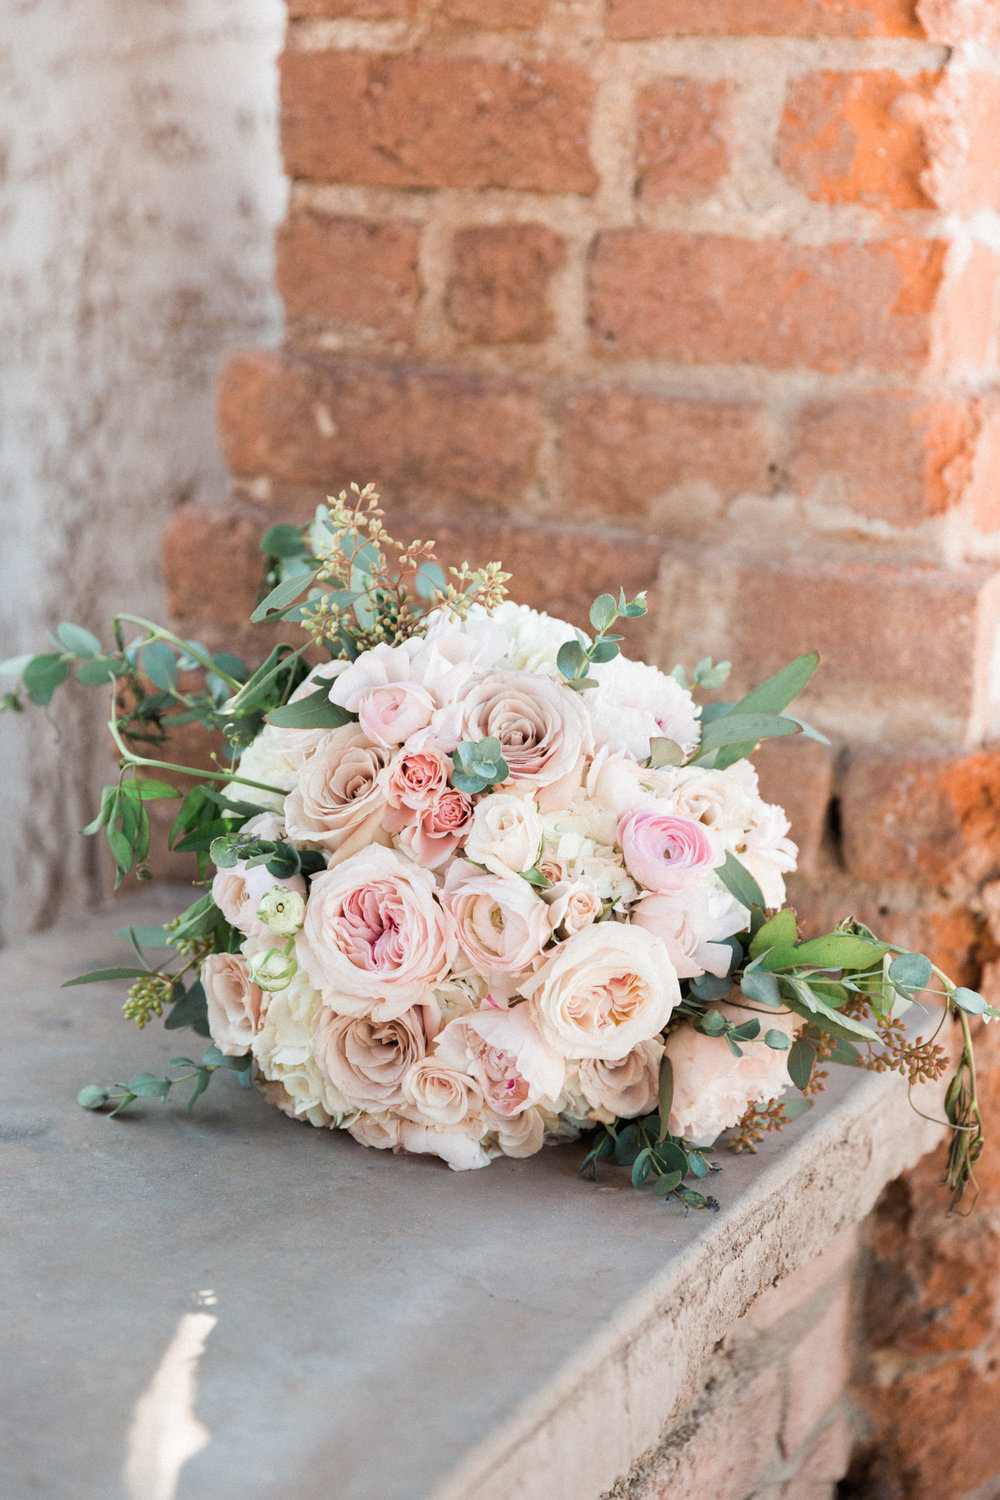 Beautiful blush bridal bouquet by Posh Petals based out of Tucson